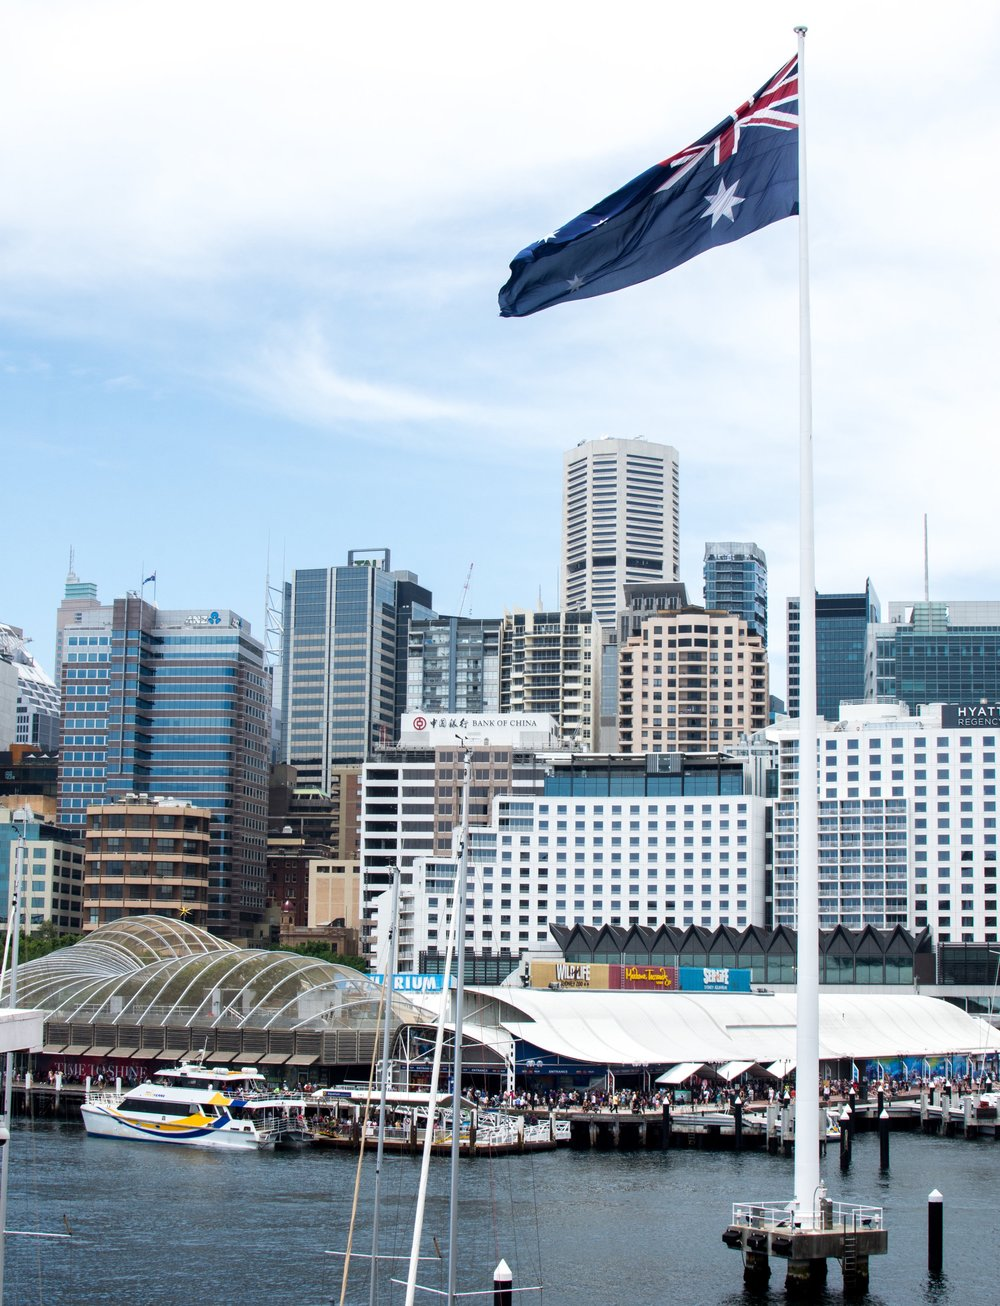 Darling Harbour Neighborhood